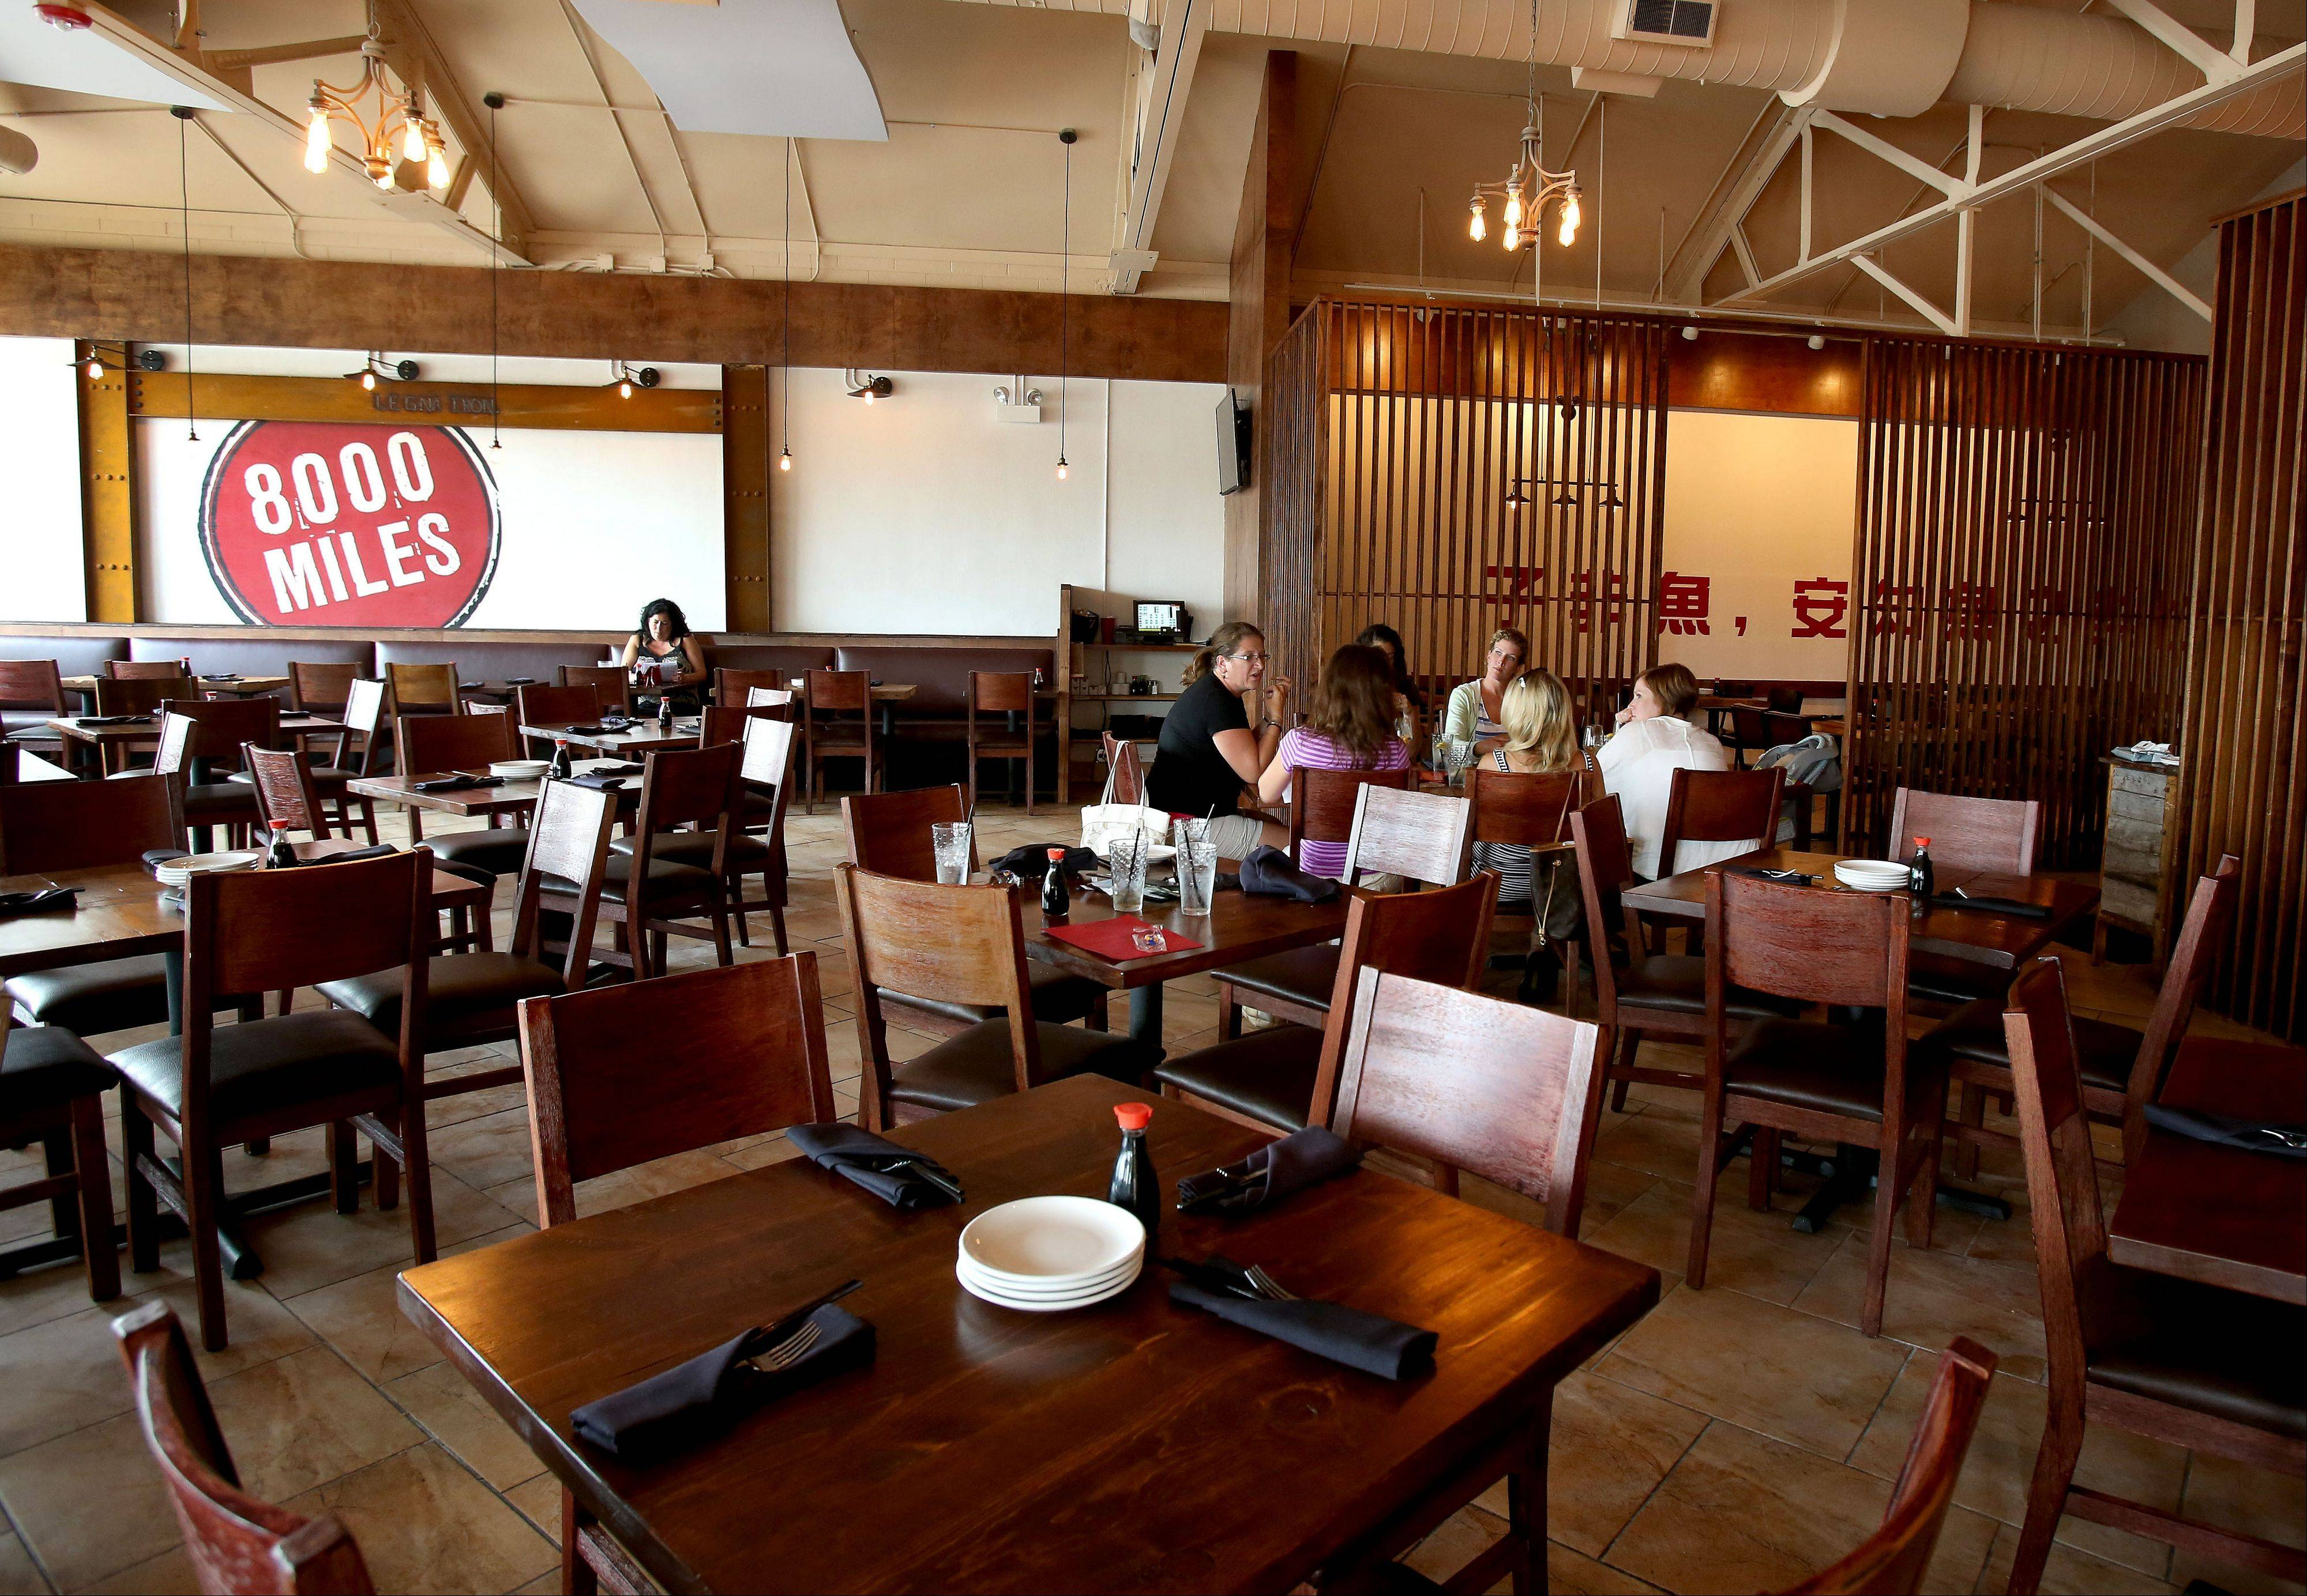 8,000 Miles serves Chinese and Japanese fare, along with a sprinkling of Thai dishes.